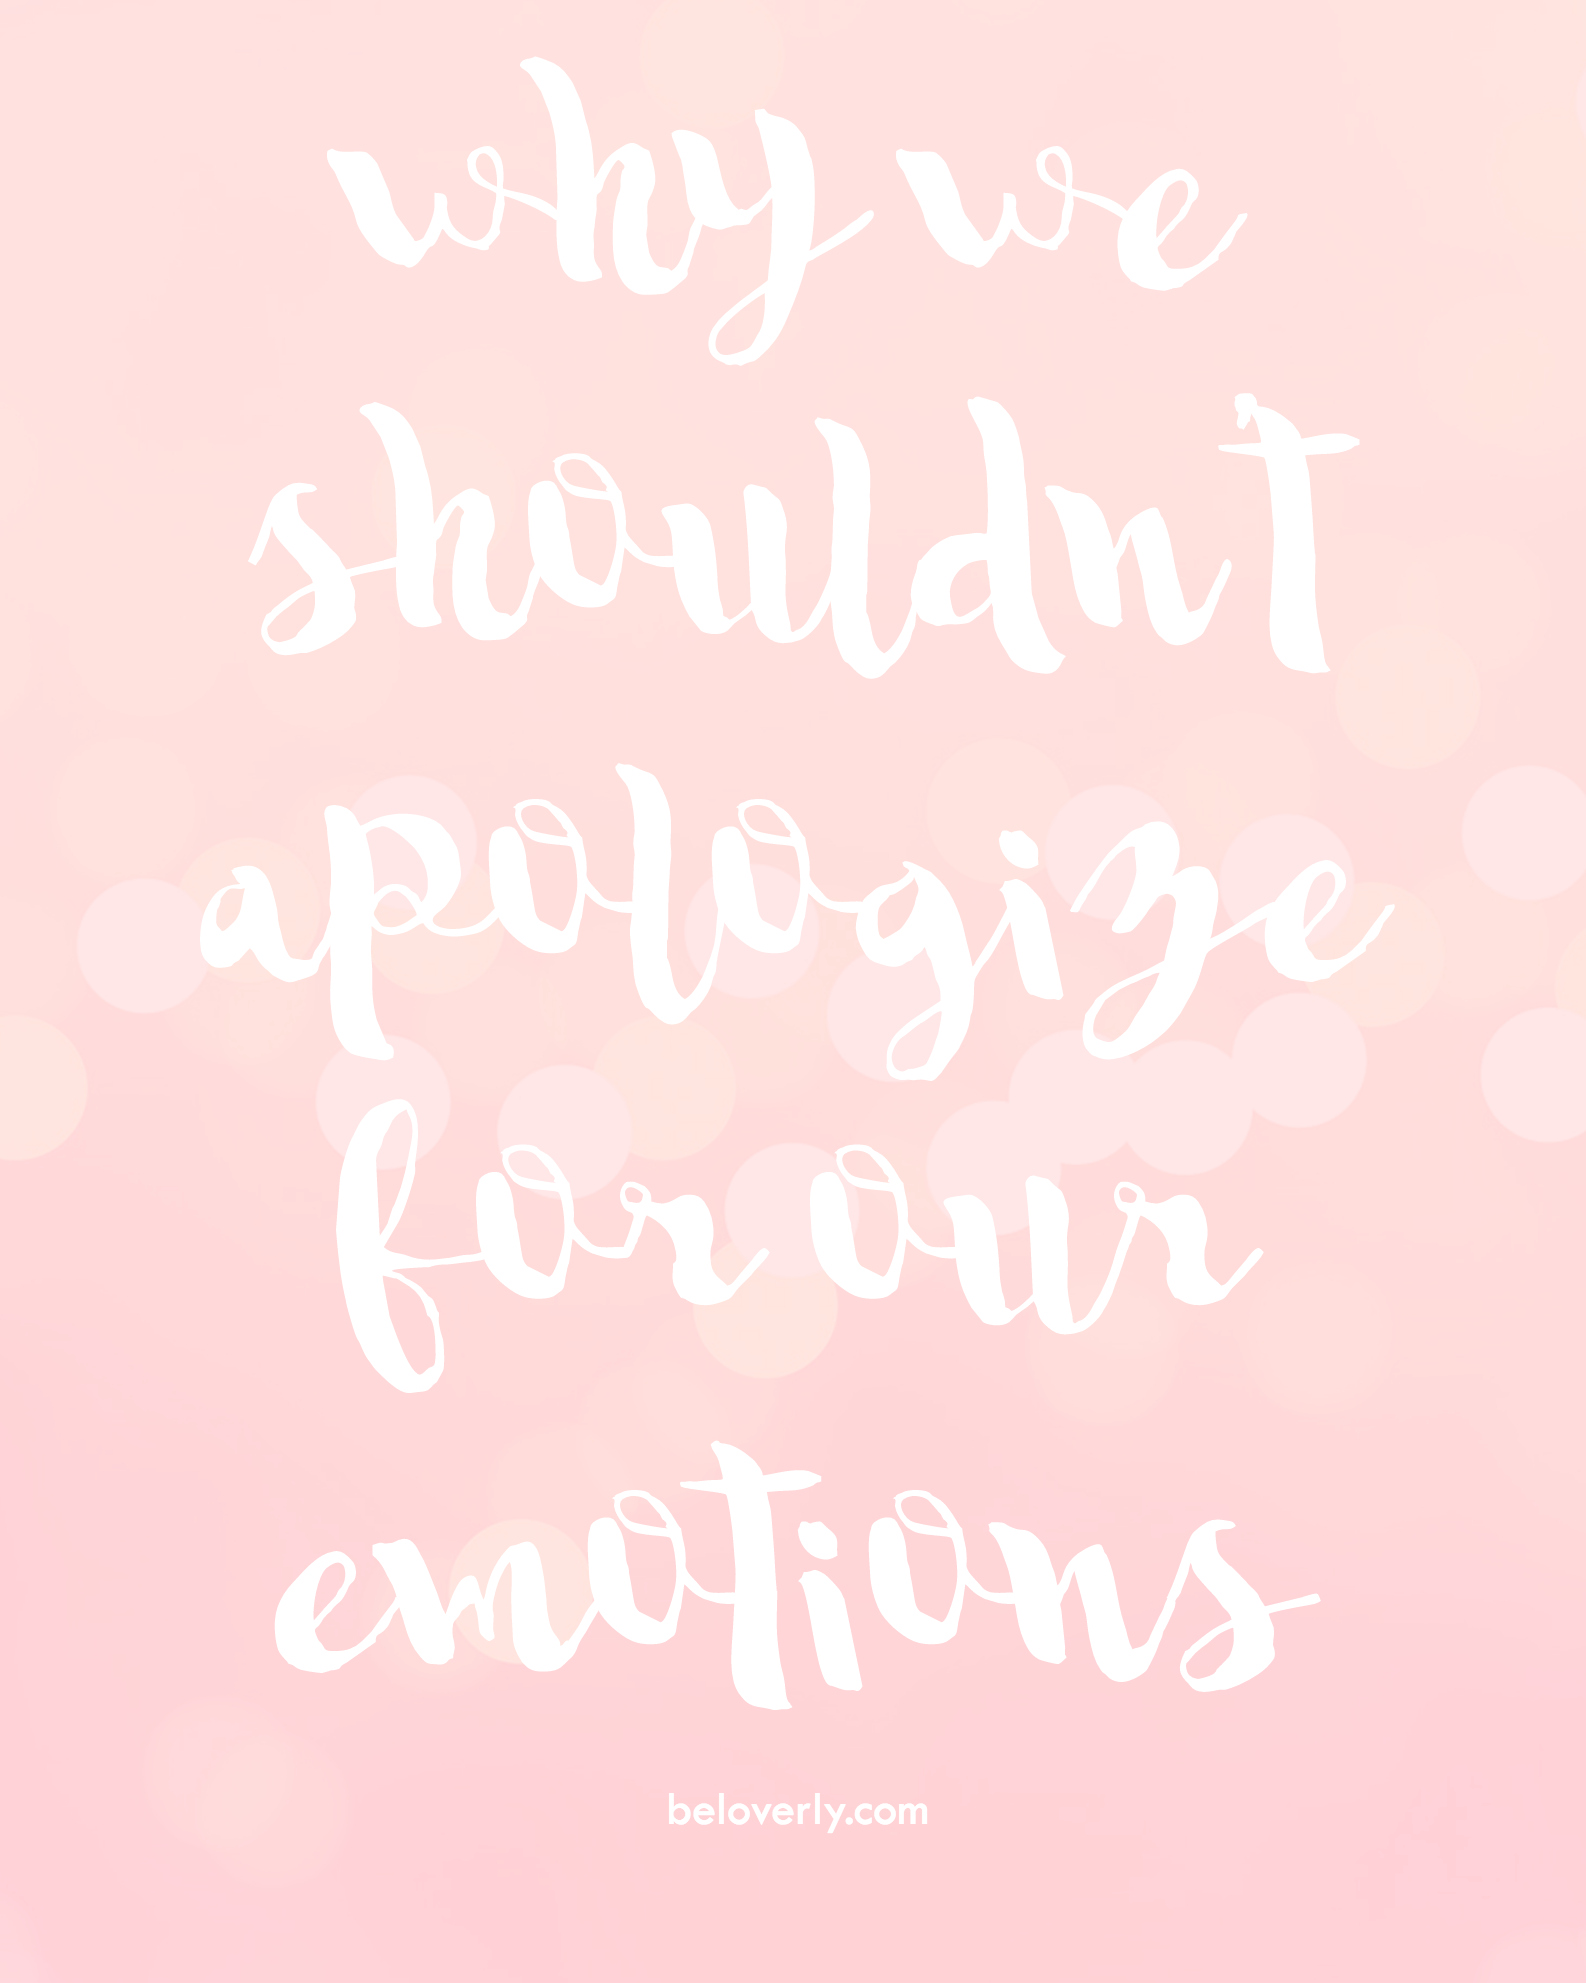 whyweshouldn'tapologizeforemotions